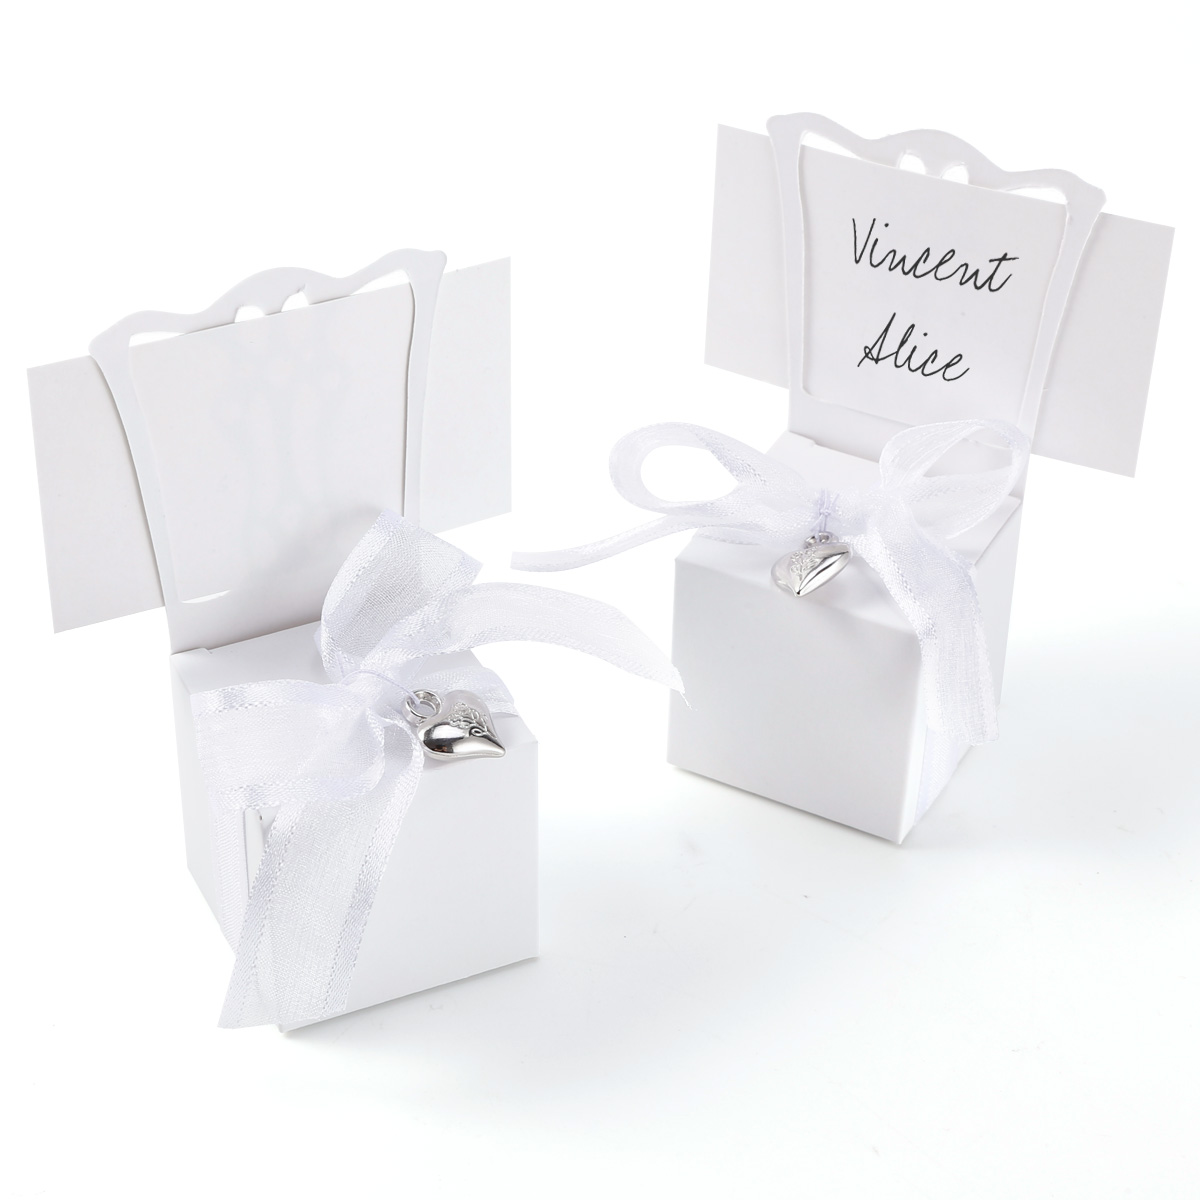 c0f448ecbbd2 Details about Ribbon Pendant Chair Wedding Party Gift Favor Boxes Place  Name Card Invitation